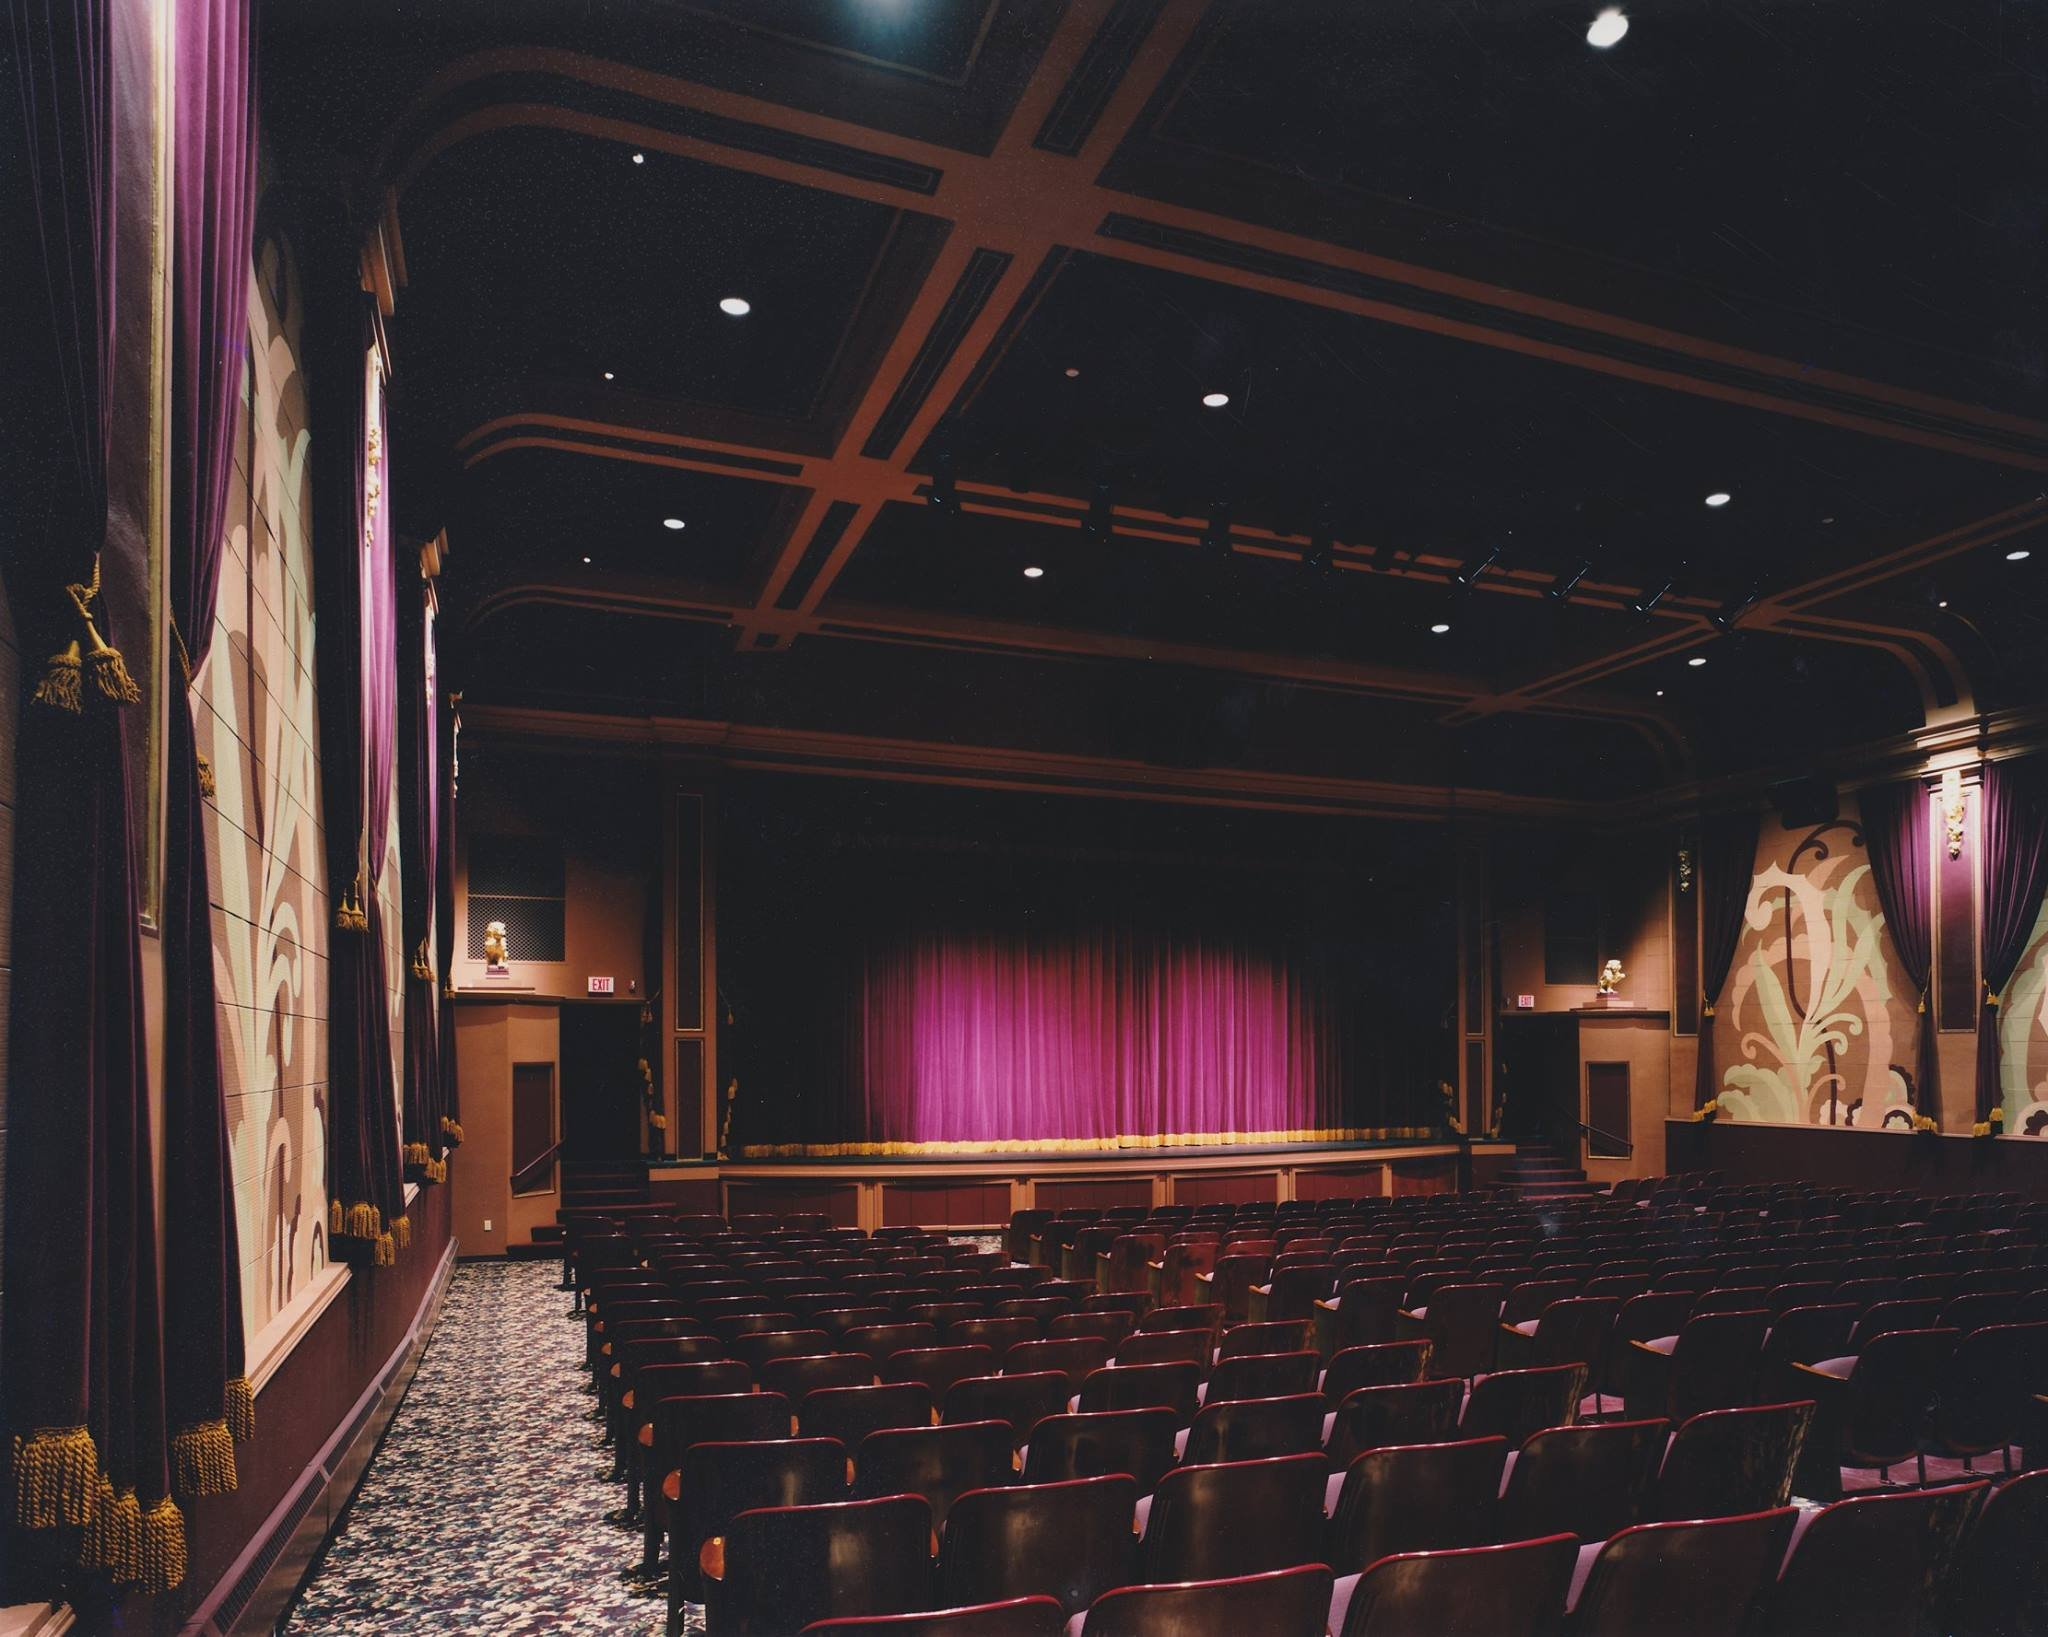 The Empire Arts Center main auditorium